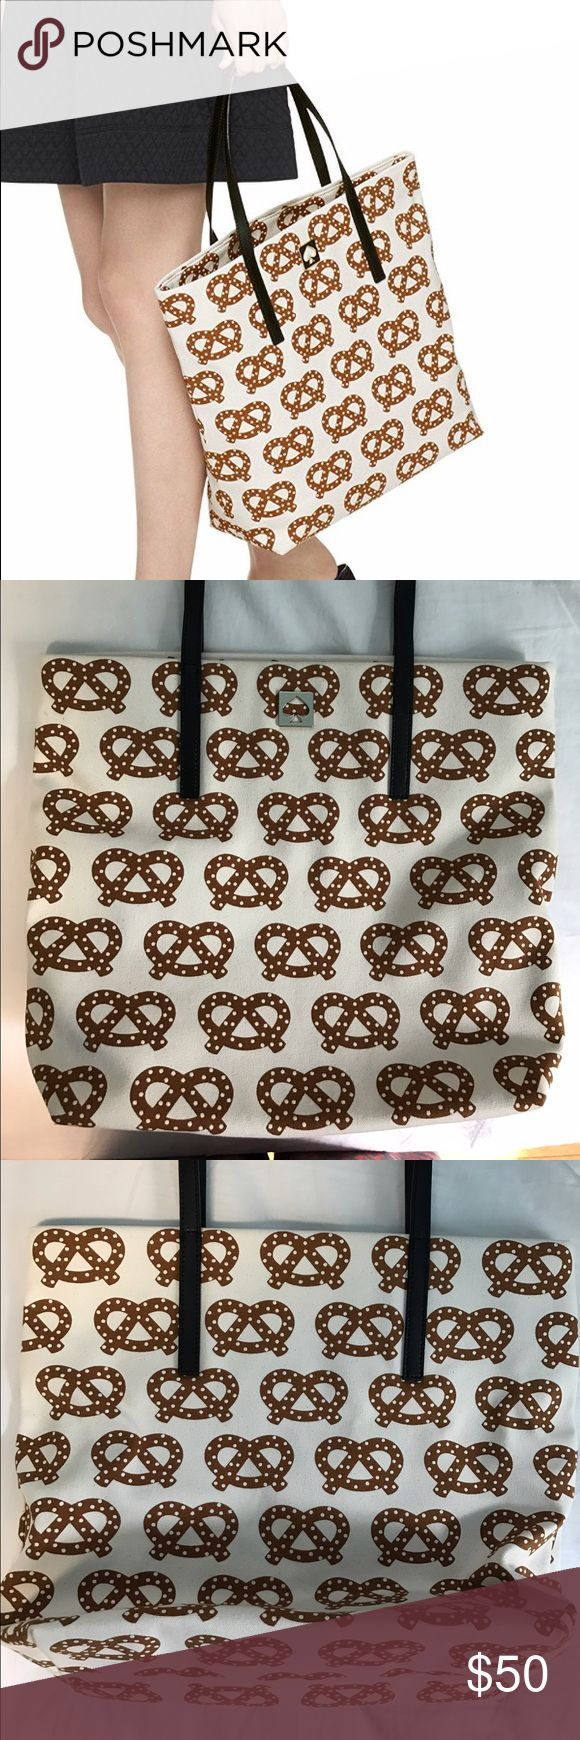 Kate Spade 'Far from the Tree' Bon Shopper Pretzel Used once. Looks brand new, no scratches or marks. Clean interior, smoke free home. Cute limited edition tote, canvas material with leather handle. Dimensions are 17.3 x 8 x 2.5 inches. kate spade Bags Totes